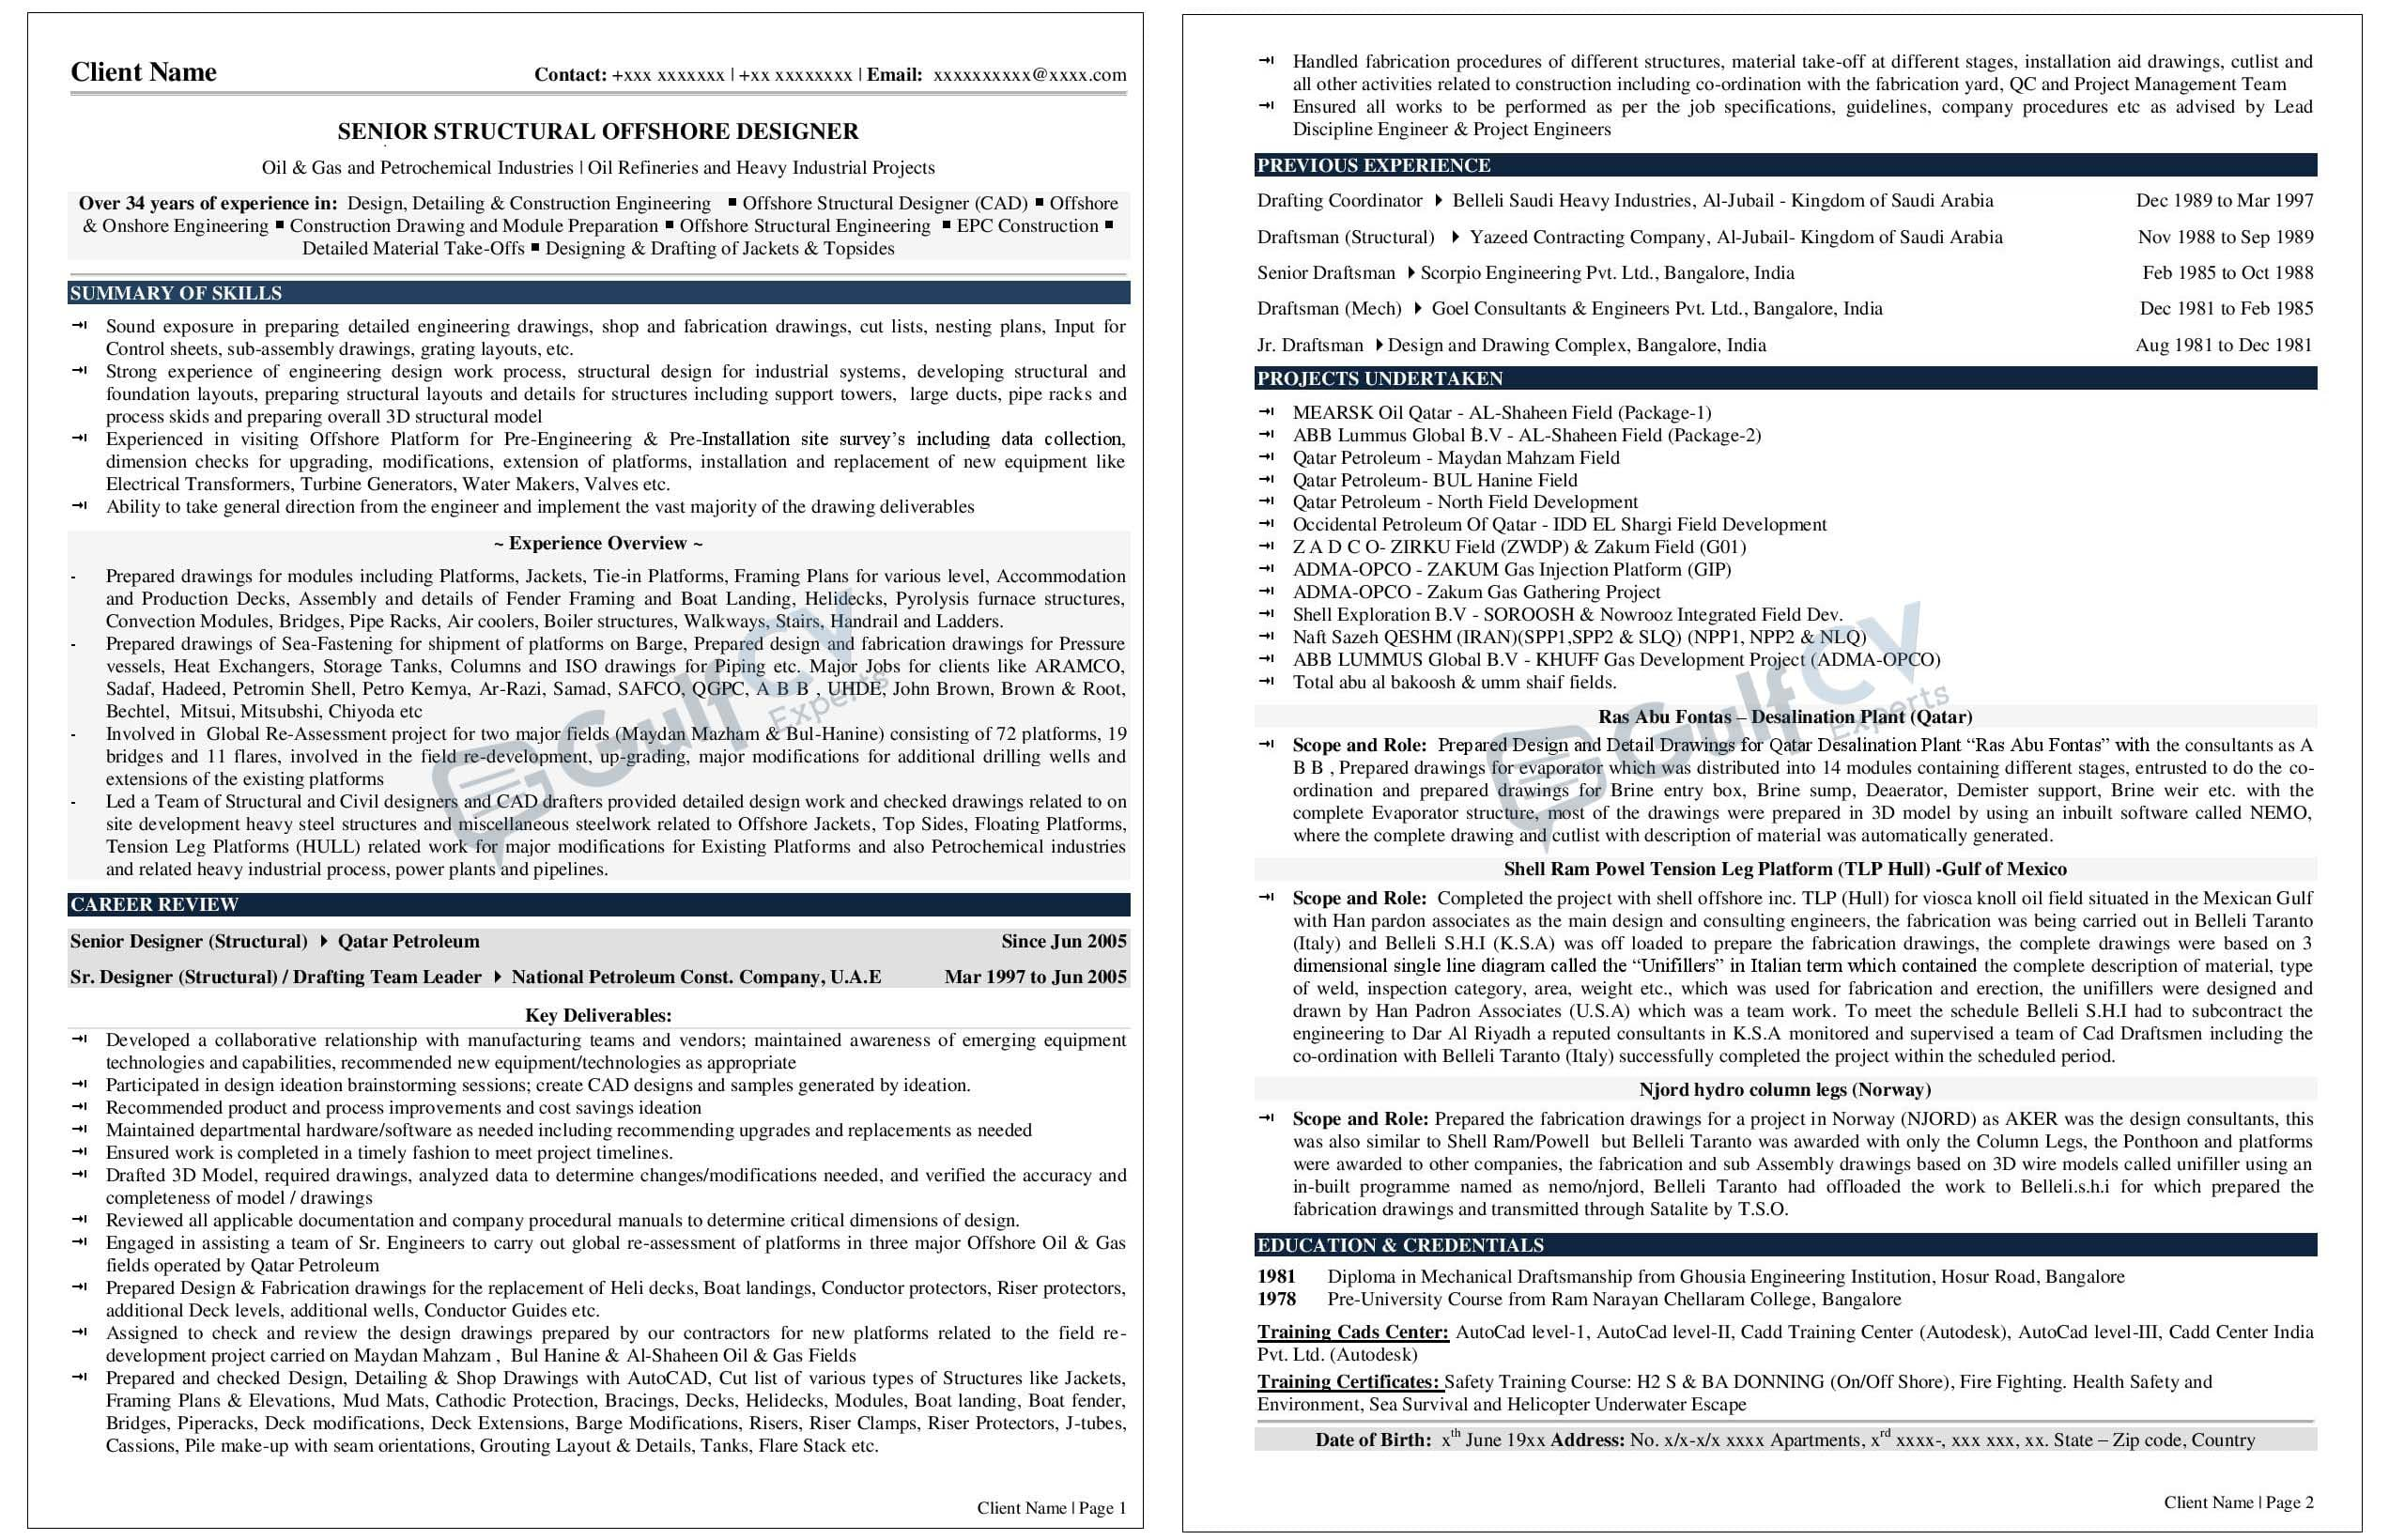 Senior Manager resume samples--gulfcvexperts.com